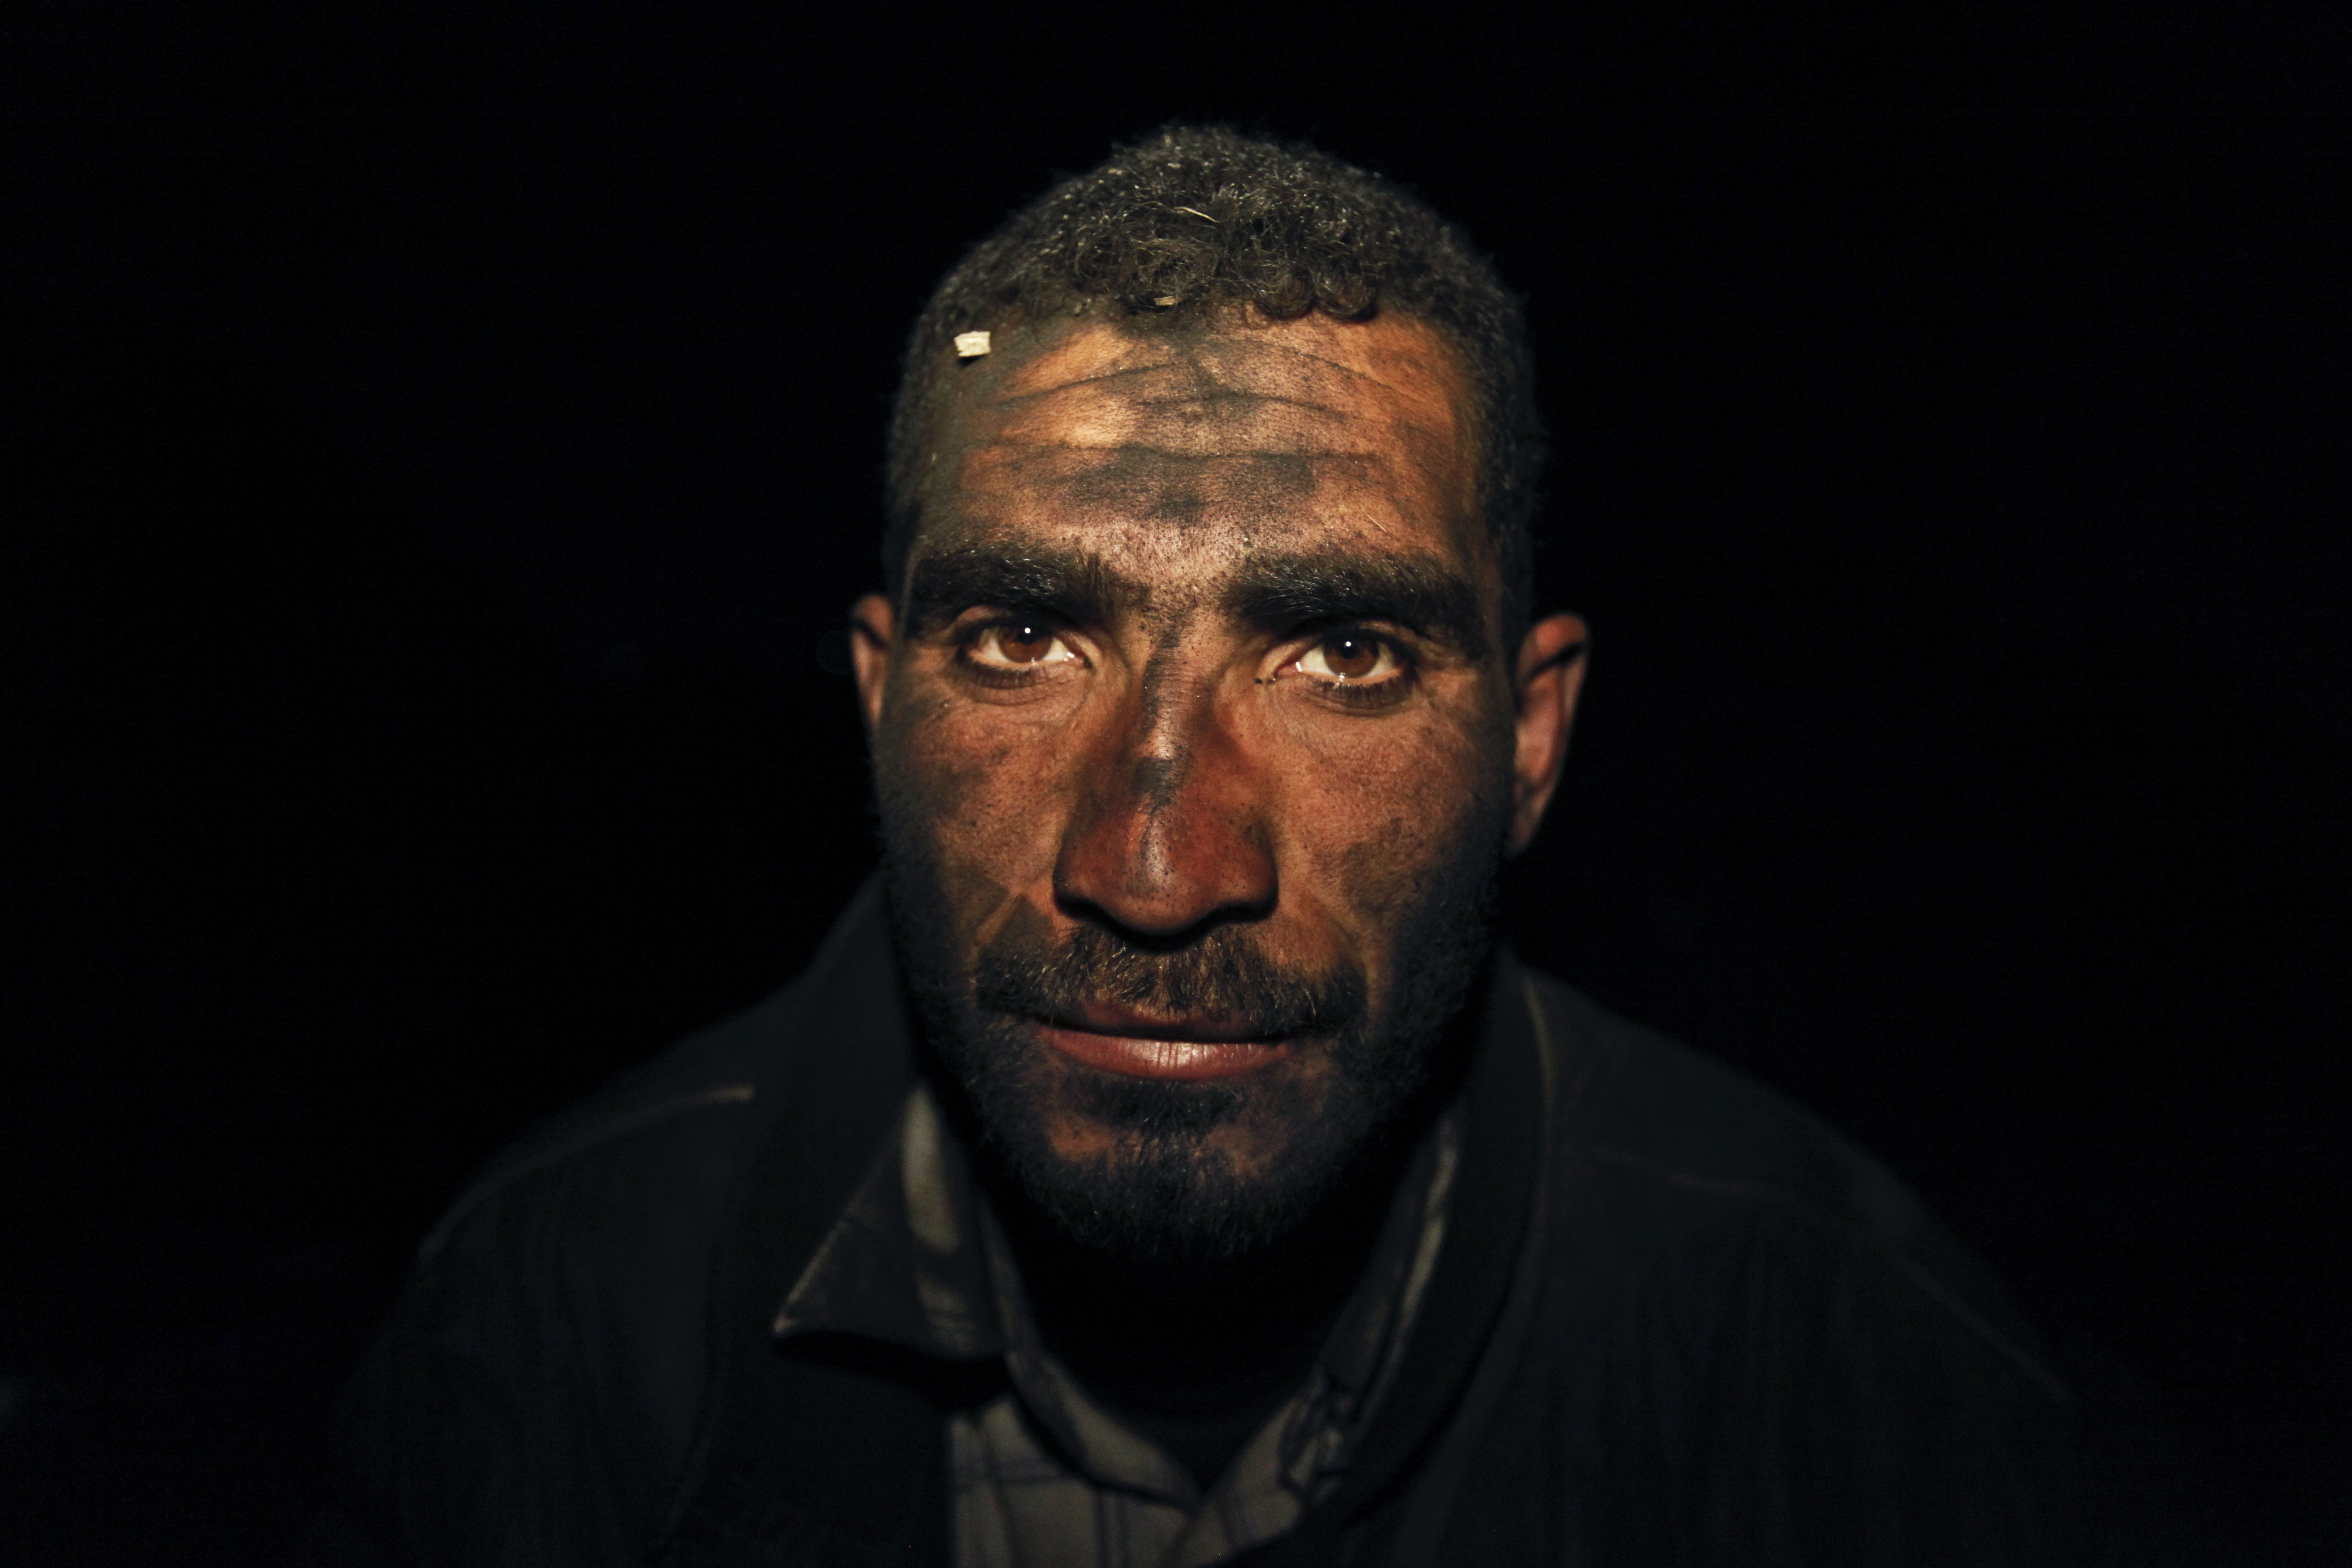 Palestinian worker Hamuda Mahdi, who oversees production of coal at night, poses for a photograph at one of the few local charcoal manufacturing shops, east of Gaza City.